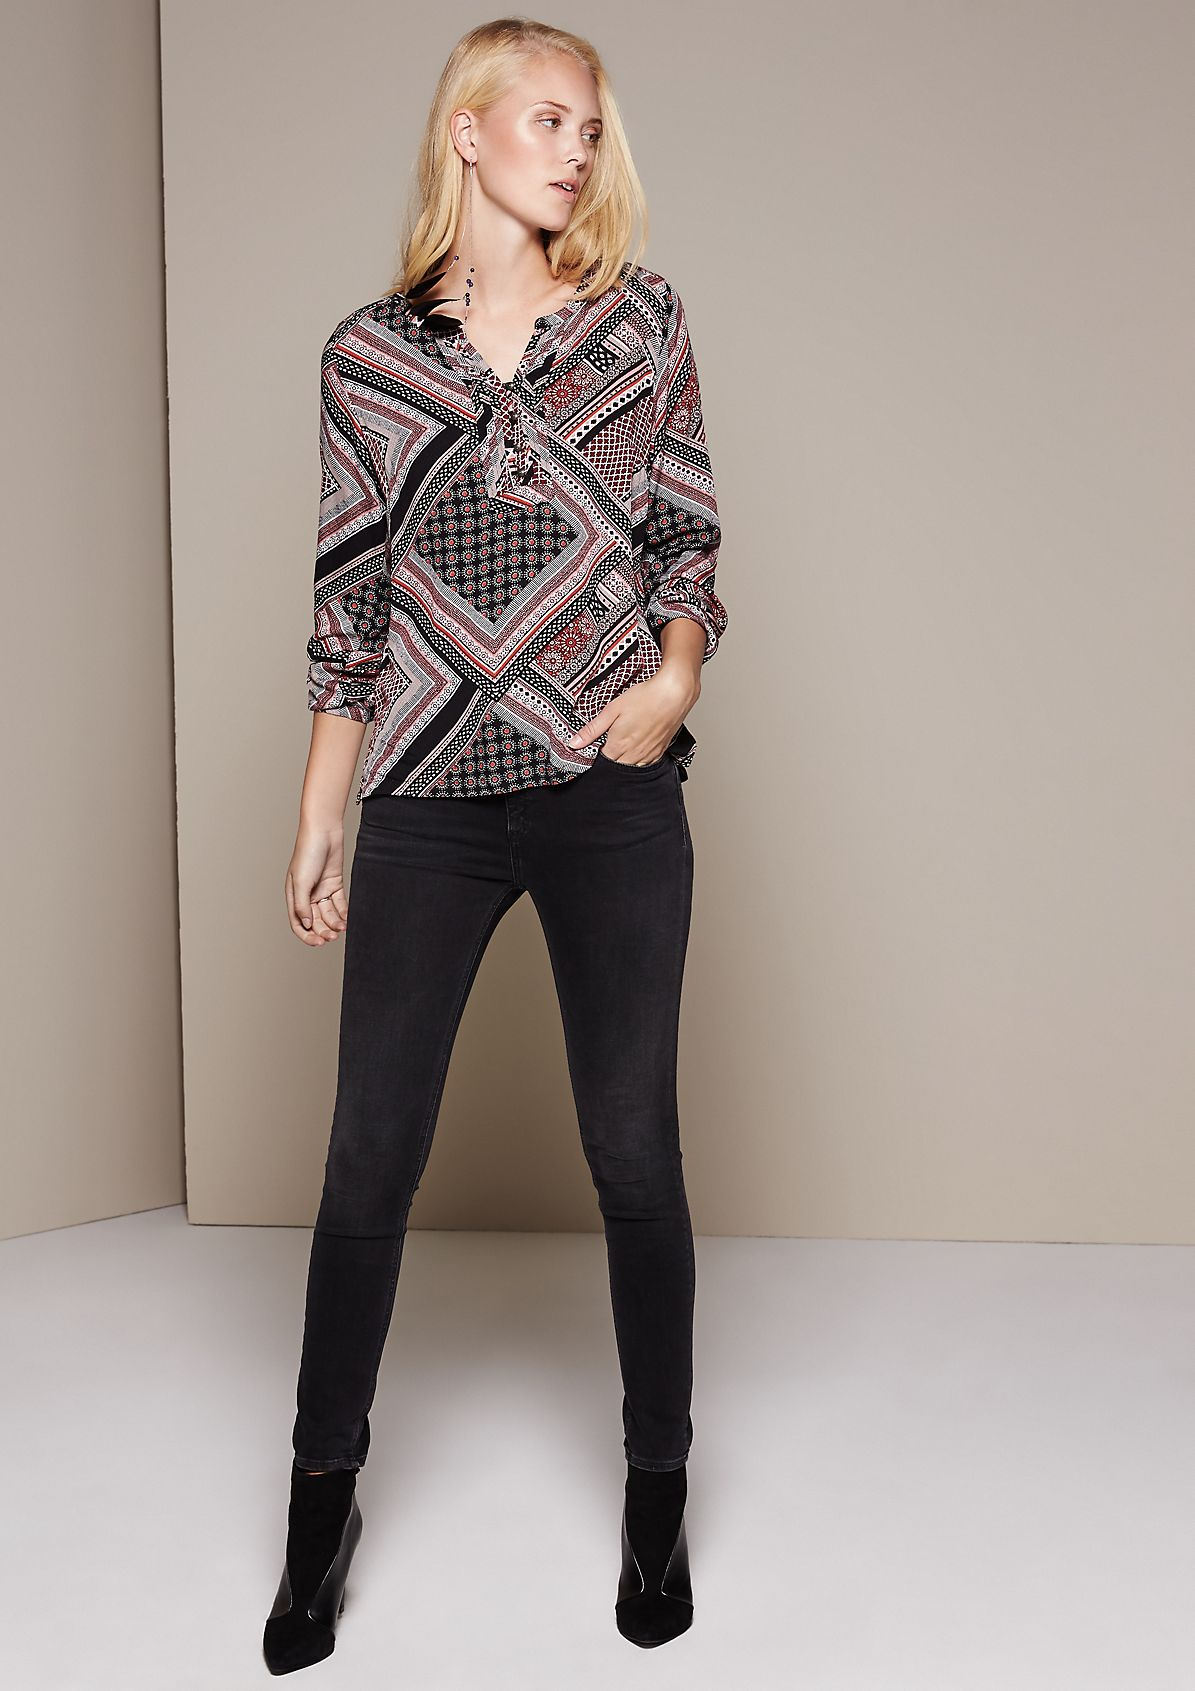 Elegant long sleeve blouse with a beautiful pattern from s.Oliver